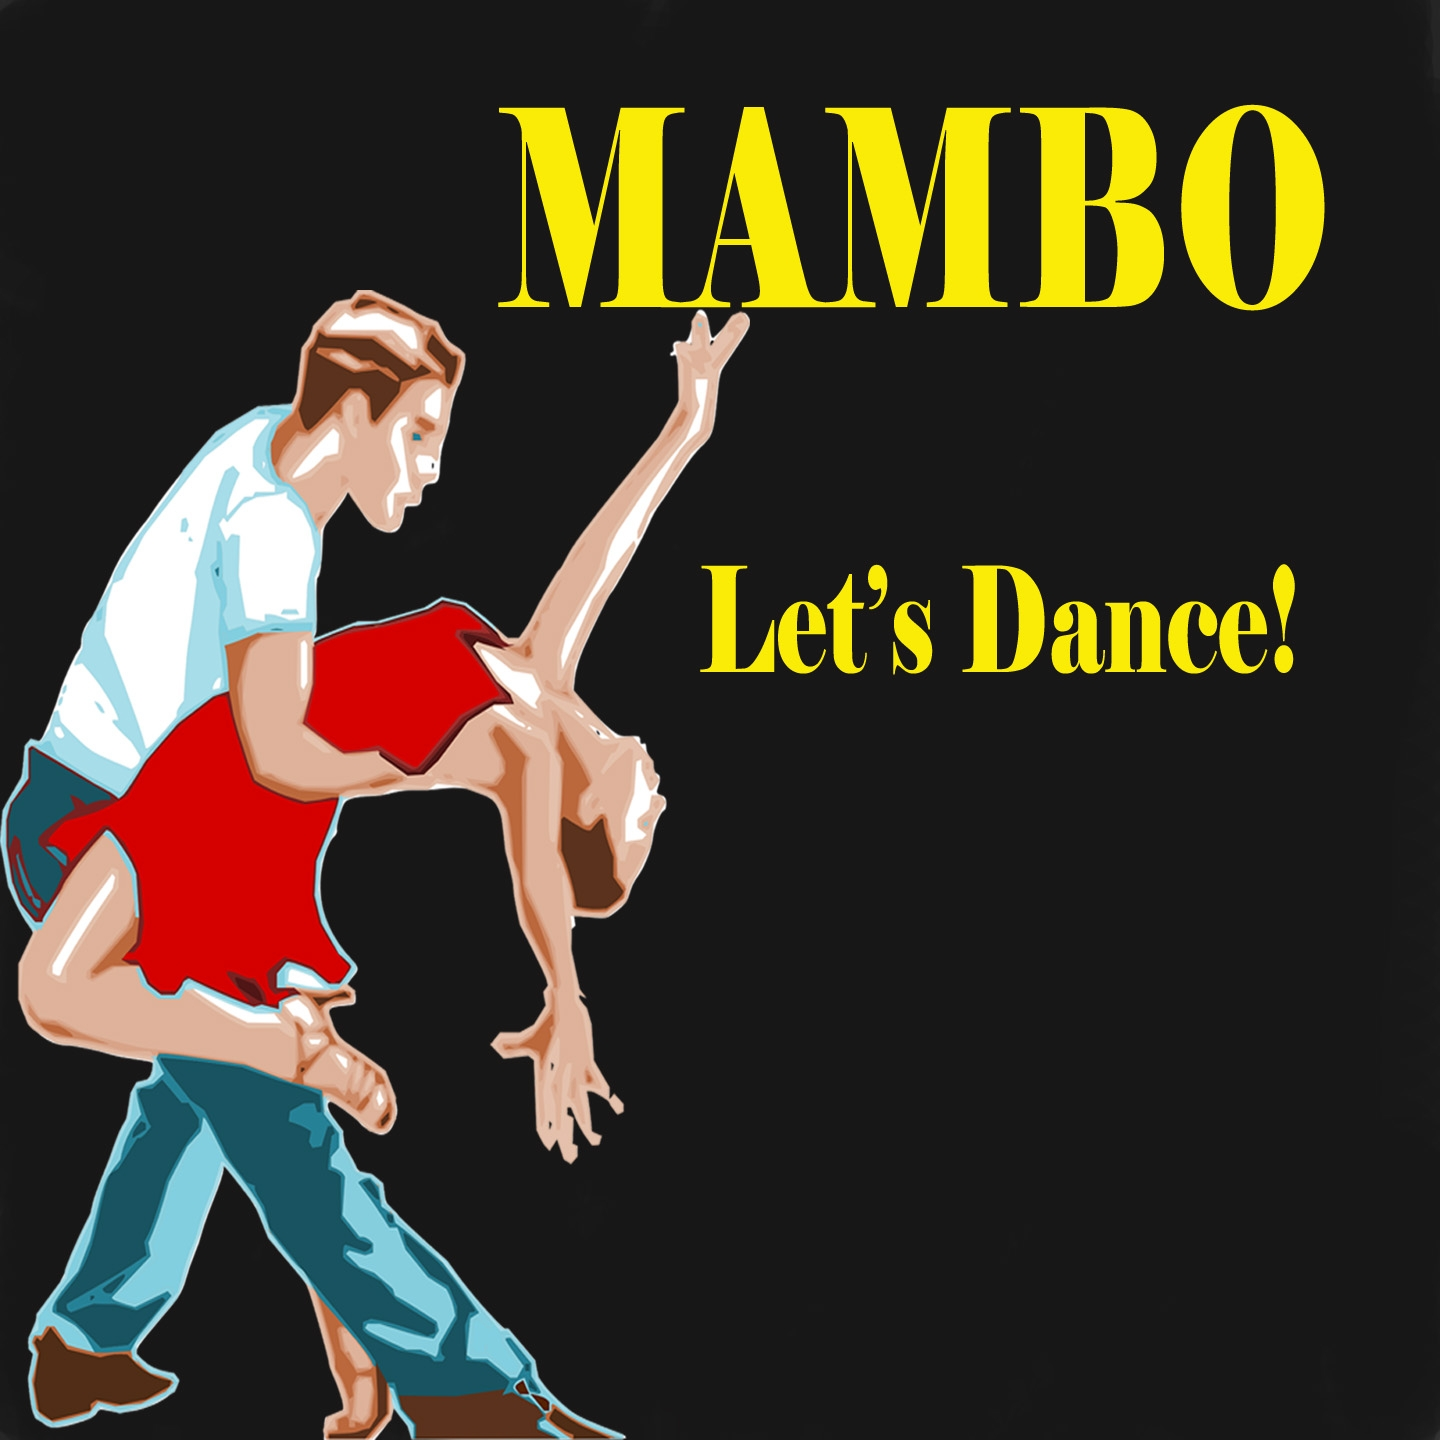 Mambo: Let's Dance!